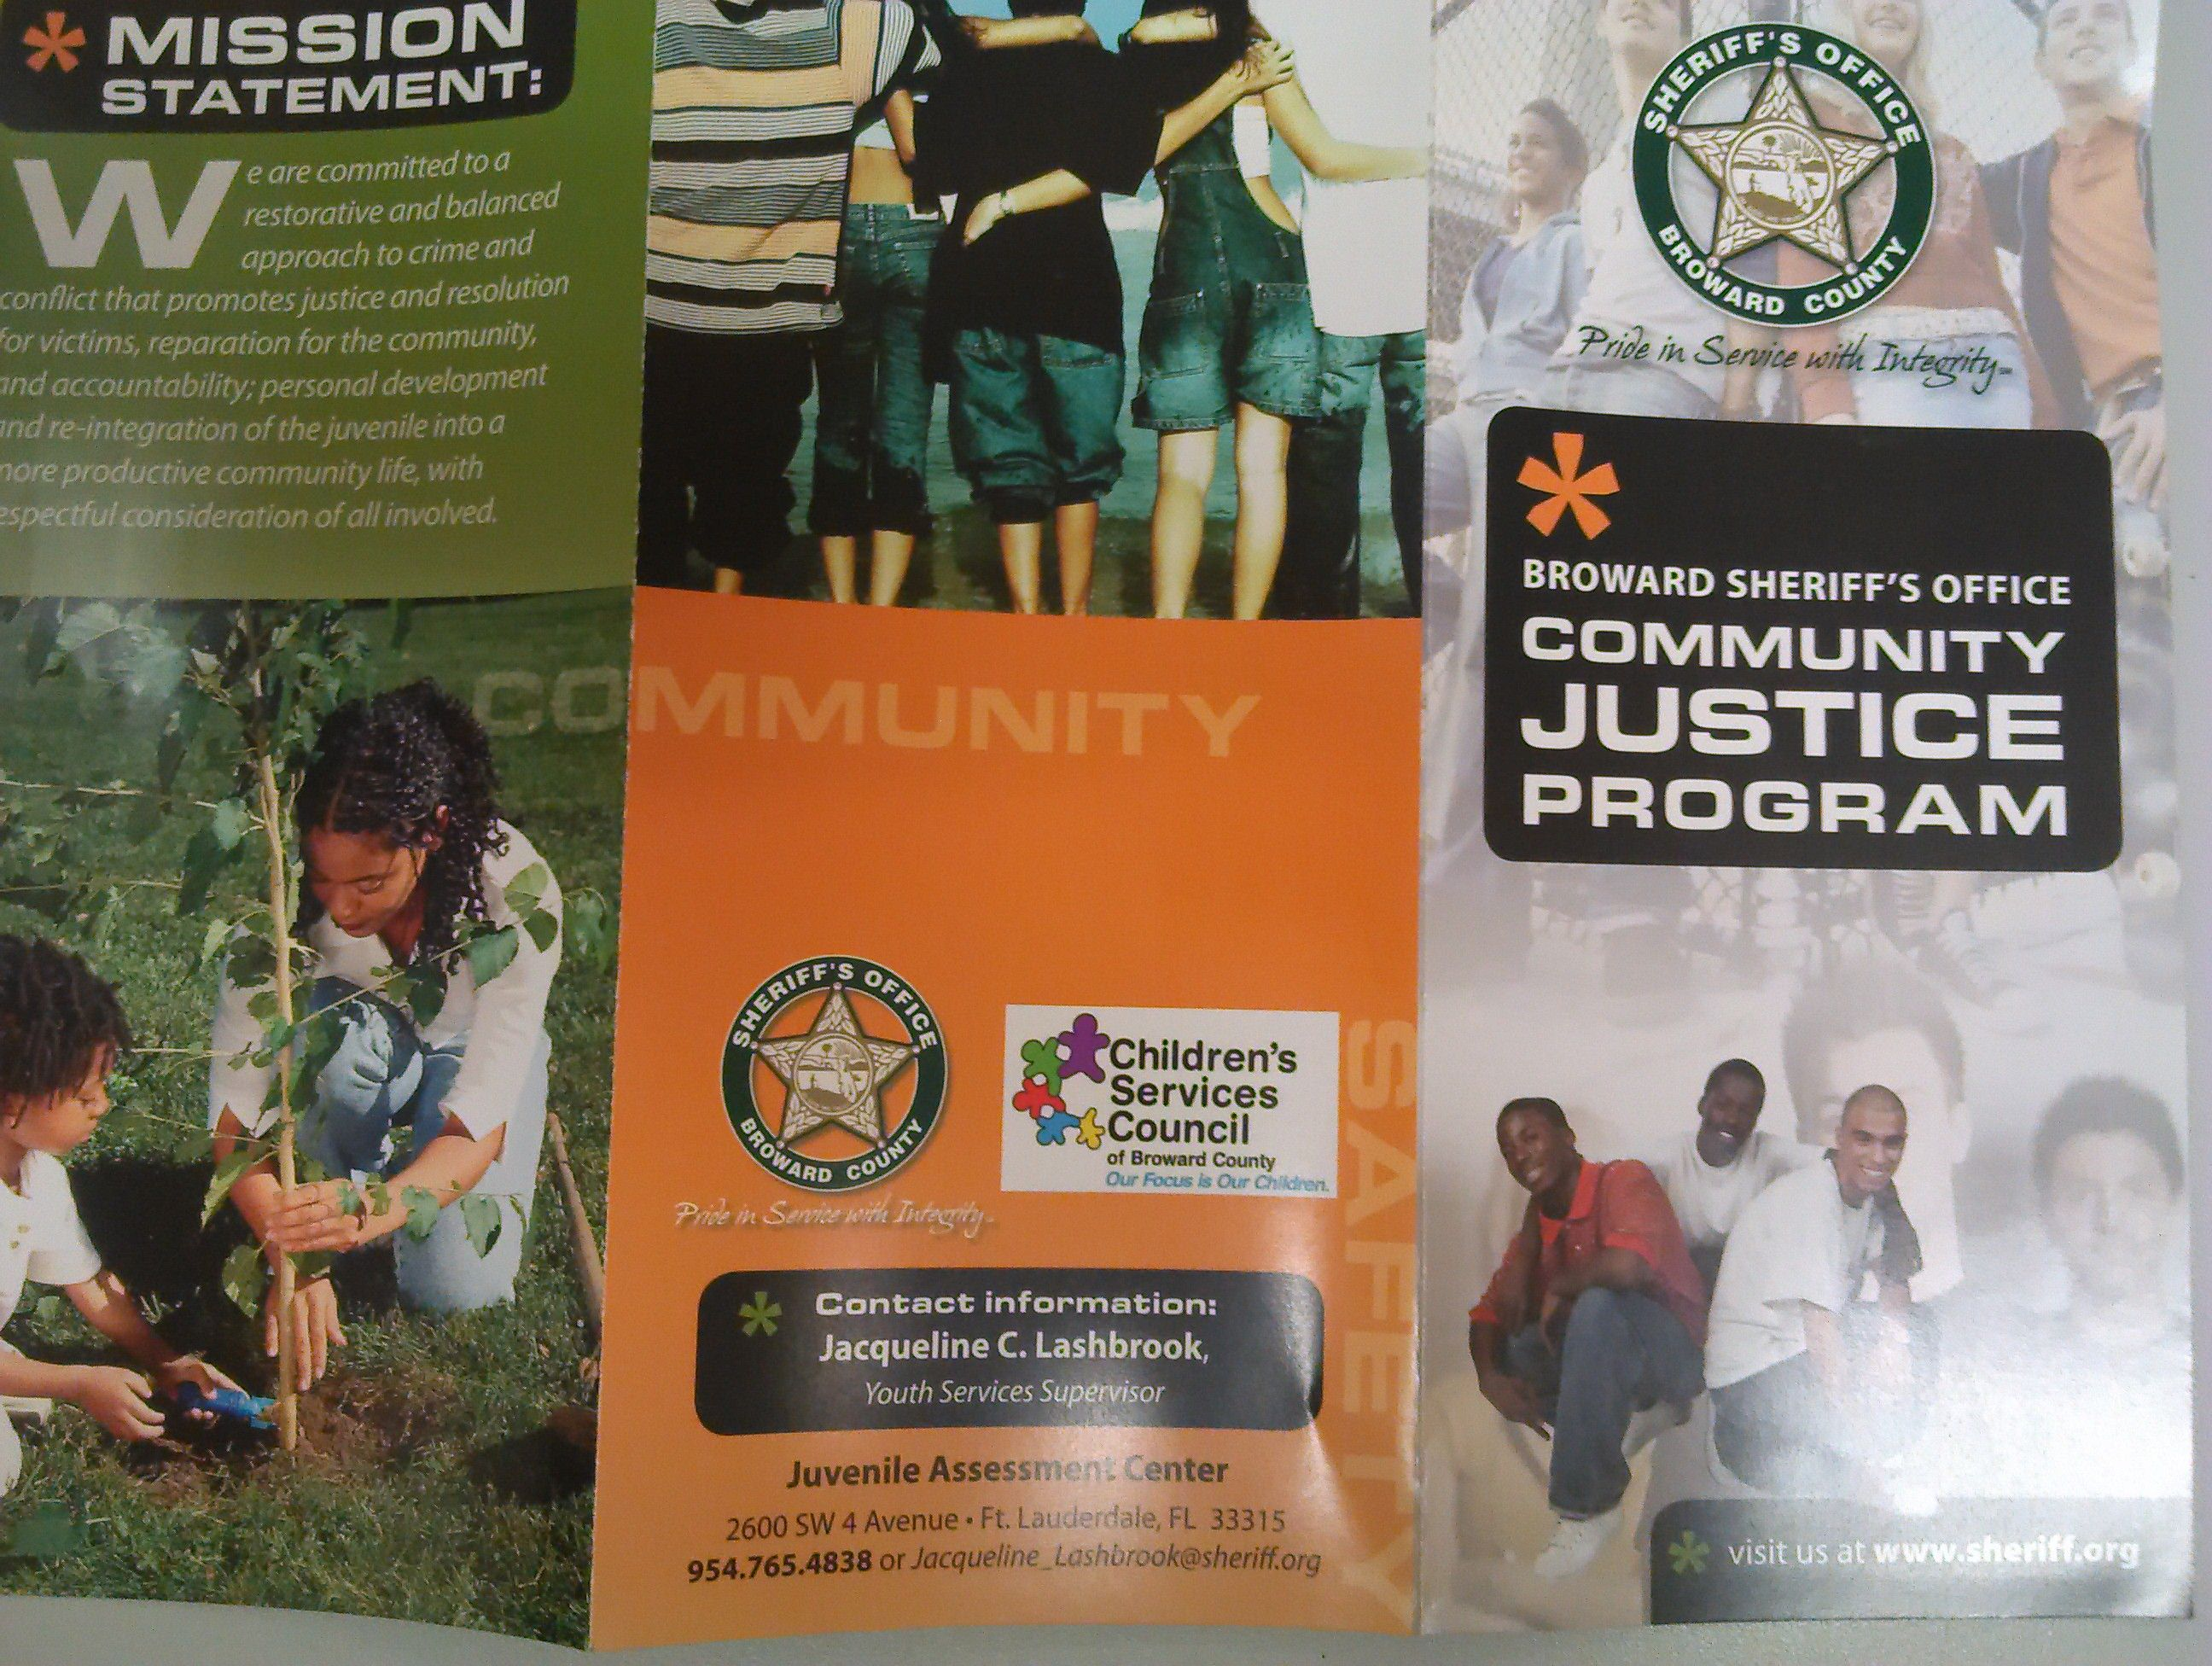 Community Justice program pamphlet that was given to me upon departure